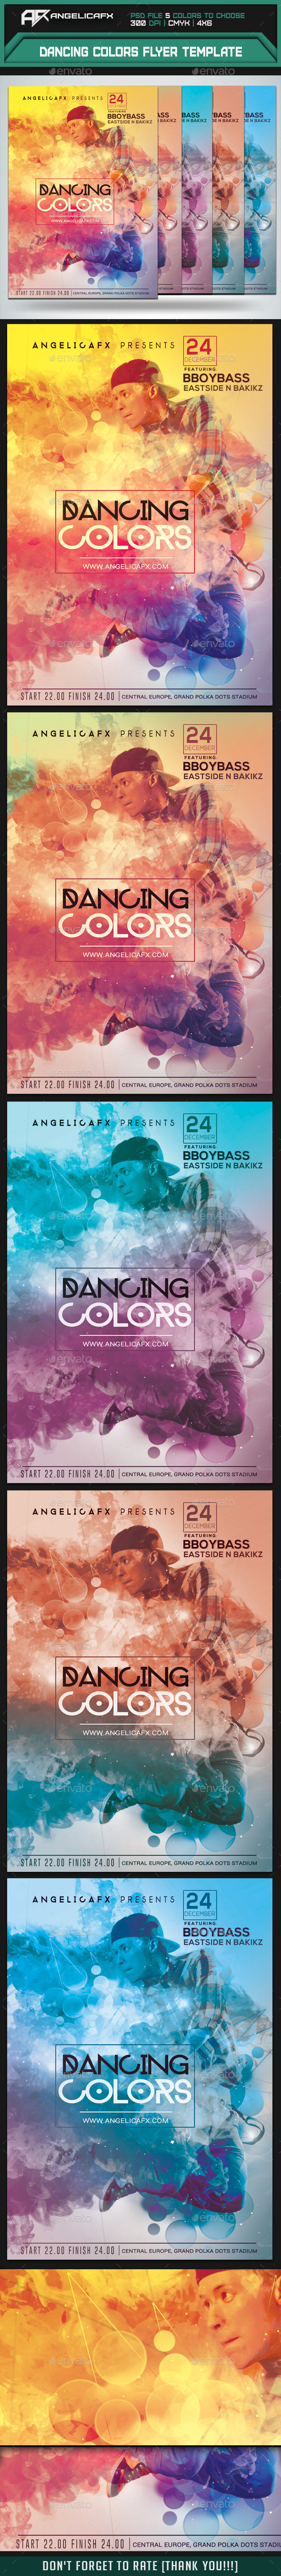 Dancing Colors Flyer Template - Events Flyers